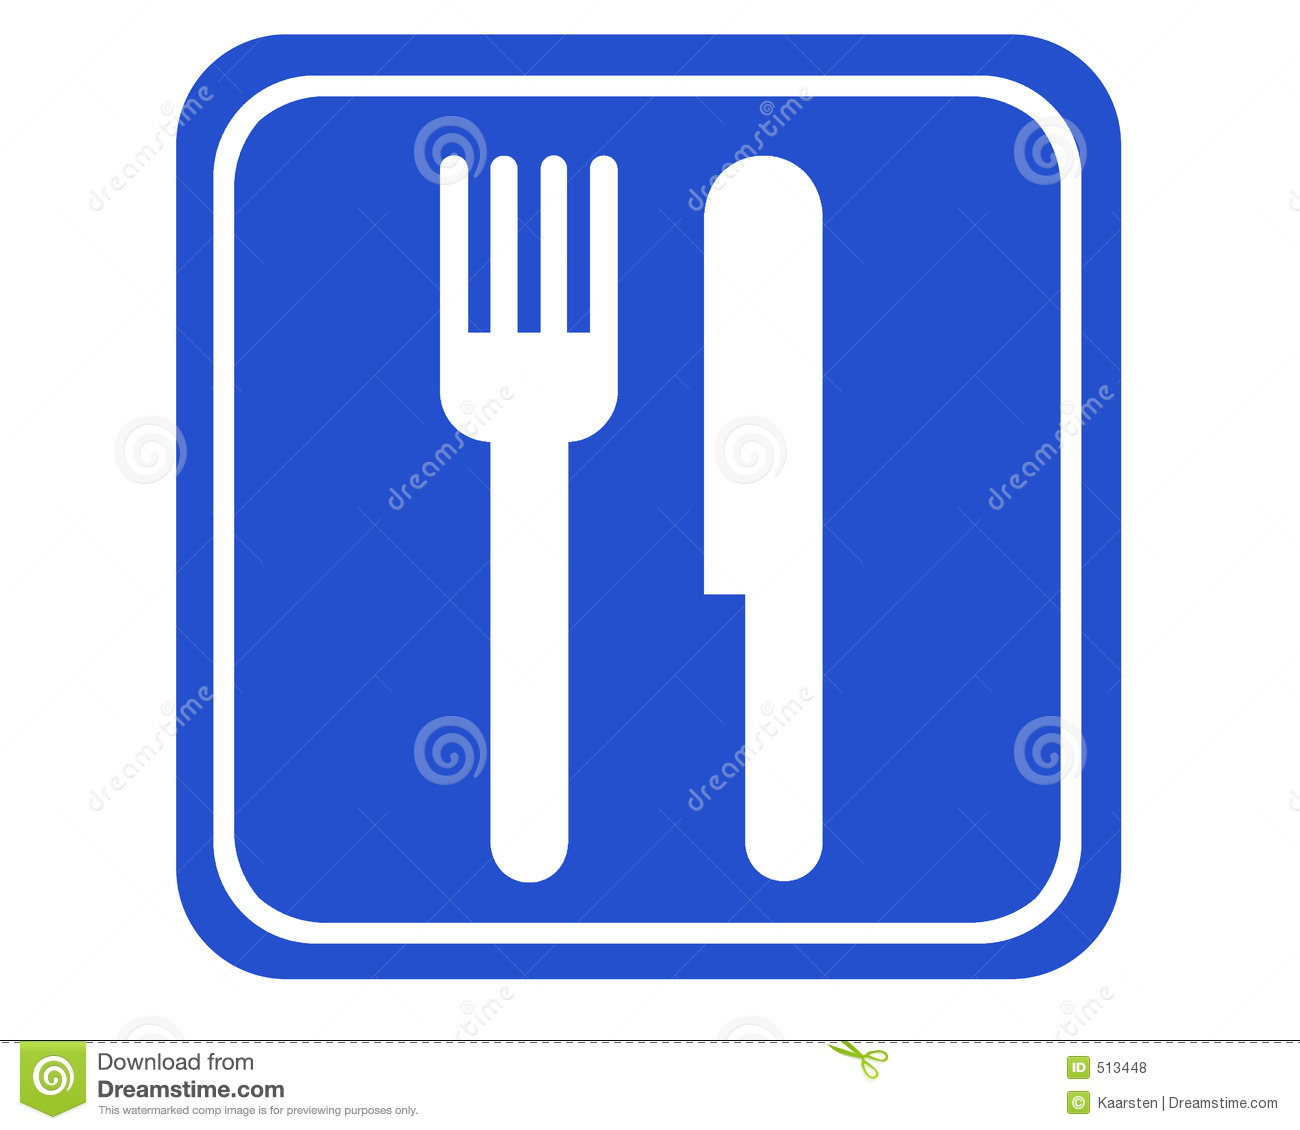 canteen royalty free stock photos image 513448 restaurant clipart black and white restaurant clip art images